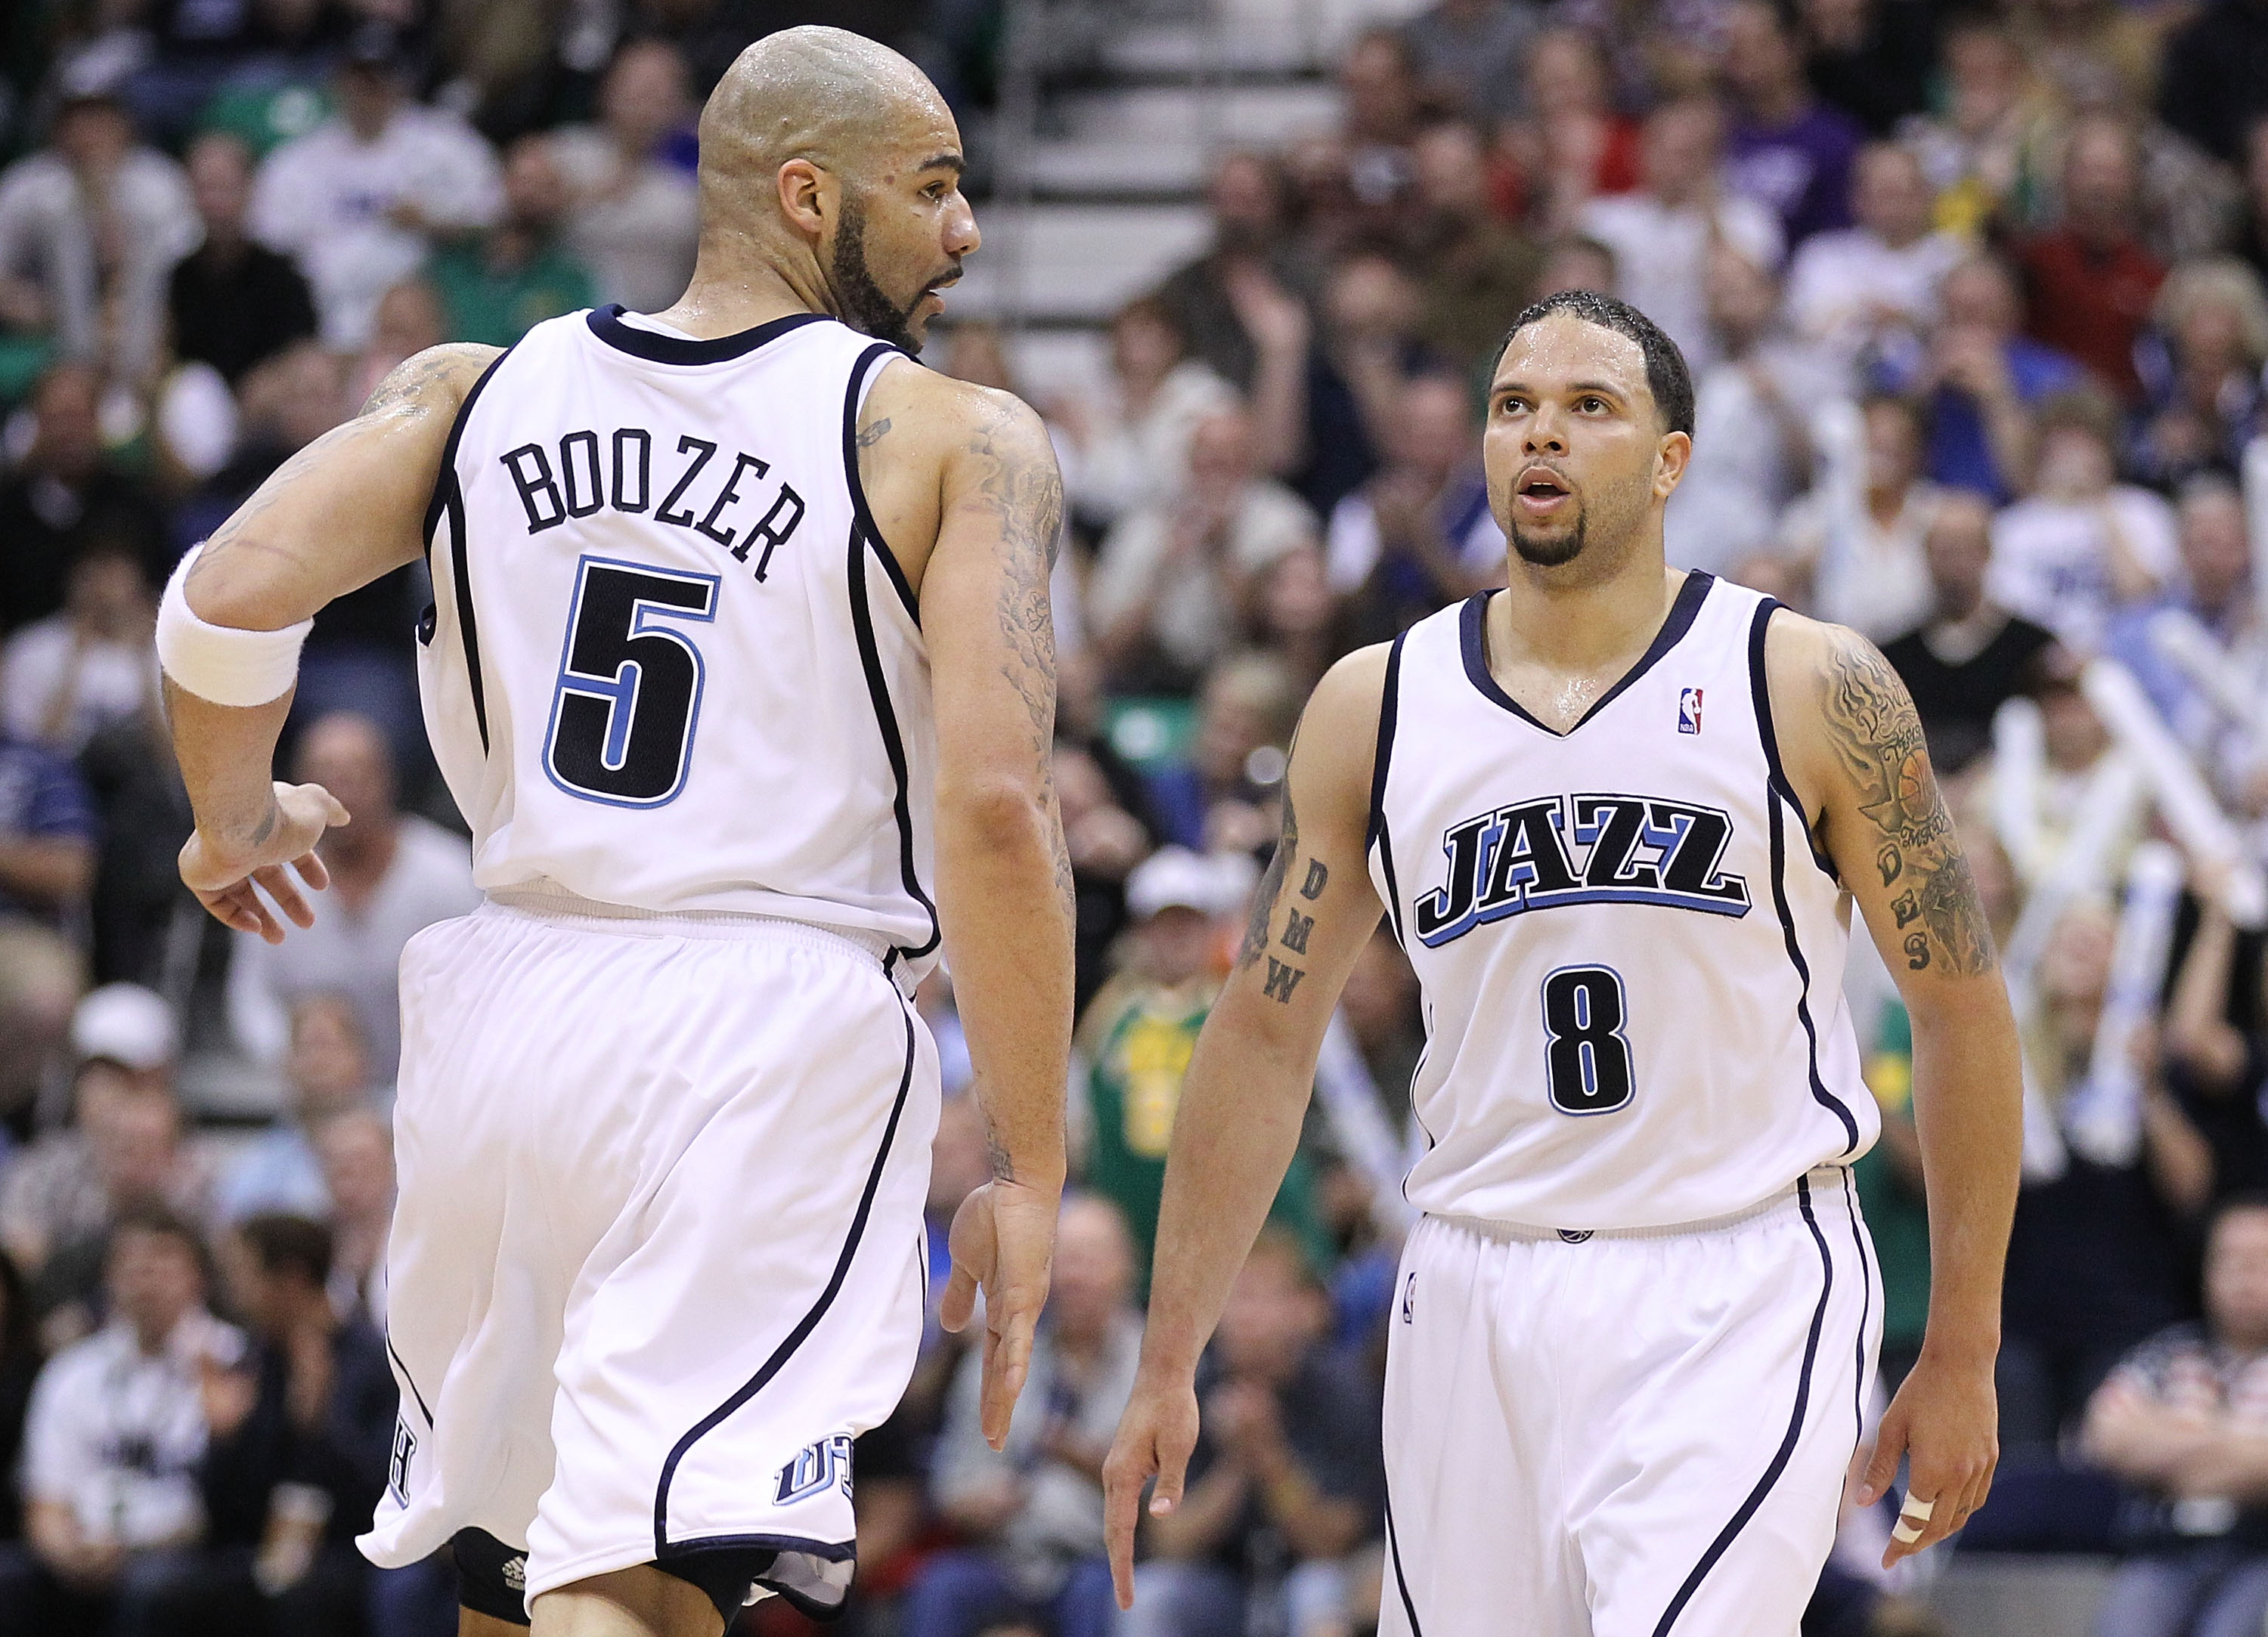 SALT LAKE CITY - MAY 10:  Deron Williams #8 and Carlos Boozer #5 of the Utah Jazz look on against the Los Angeles Lakers during Game Four of the Western Conference Semifinals of the 2010 NBA Playoffs on May 10, 2010 at Energy Solutions Arena in Salt Lake